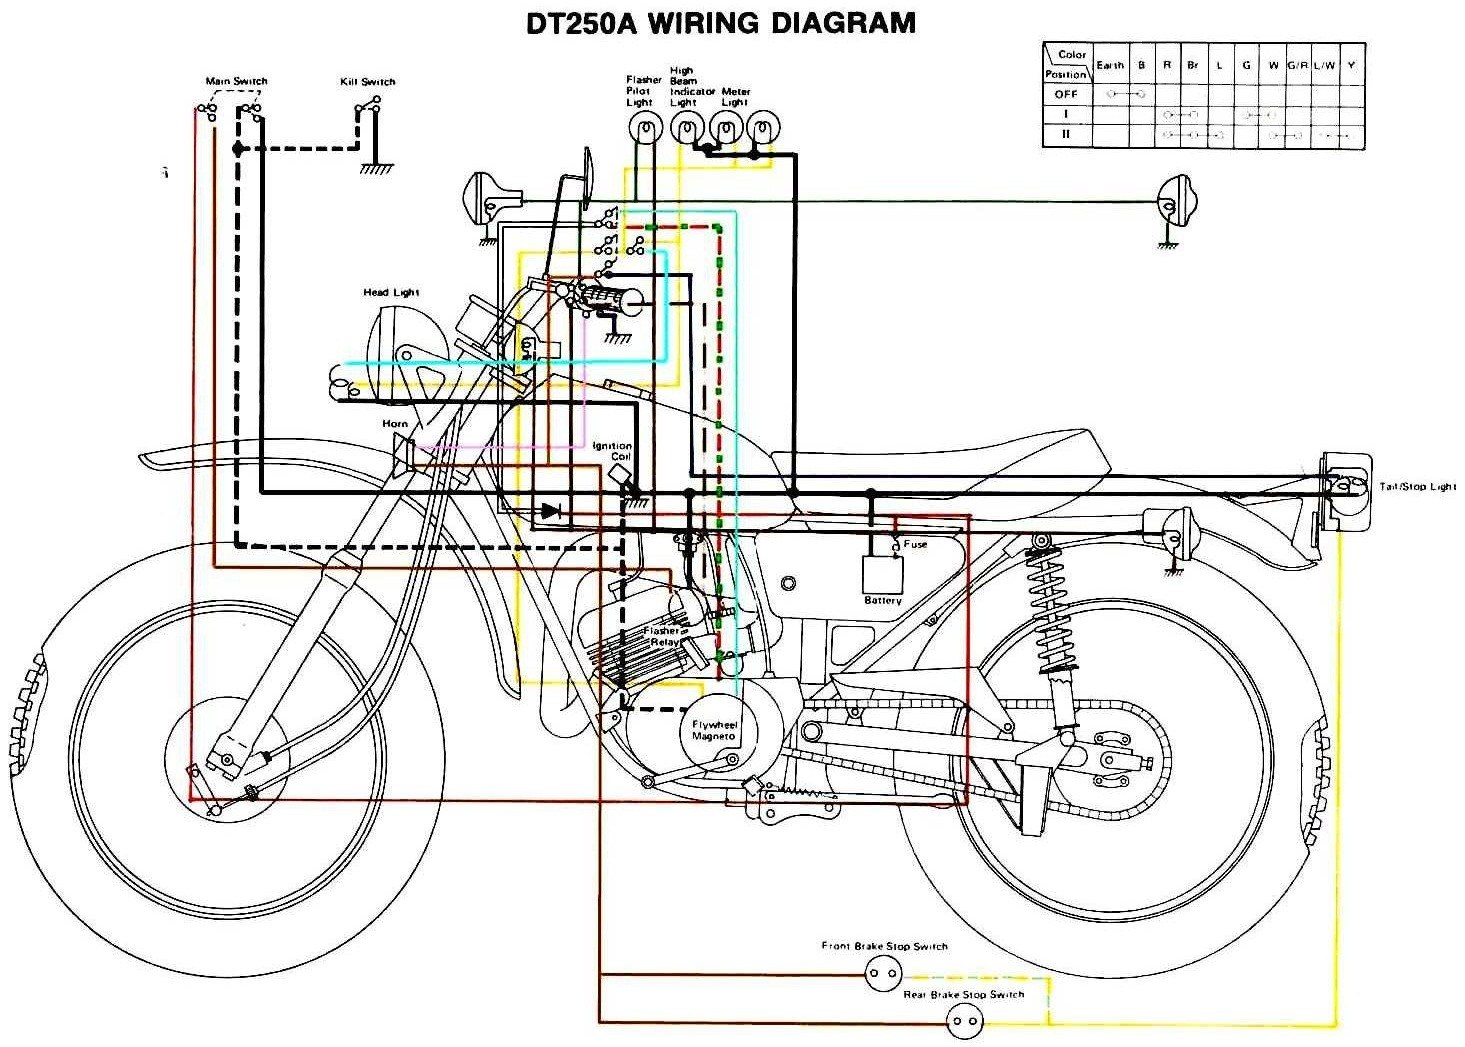 1995 Yamaha Scooter Wiring Diagram Schematic Wiring Diagram For Omc Cobra Light Switch 1997wir Jeanjaures37 Fr